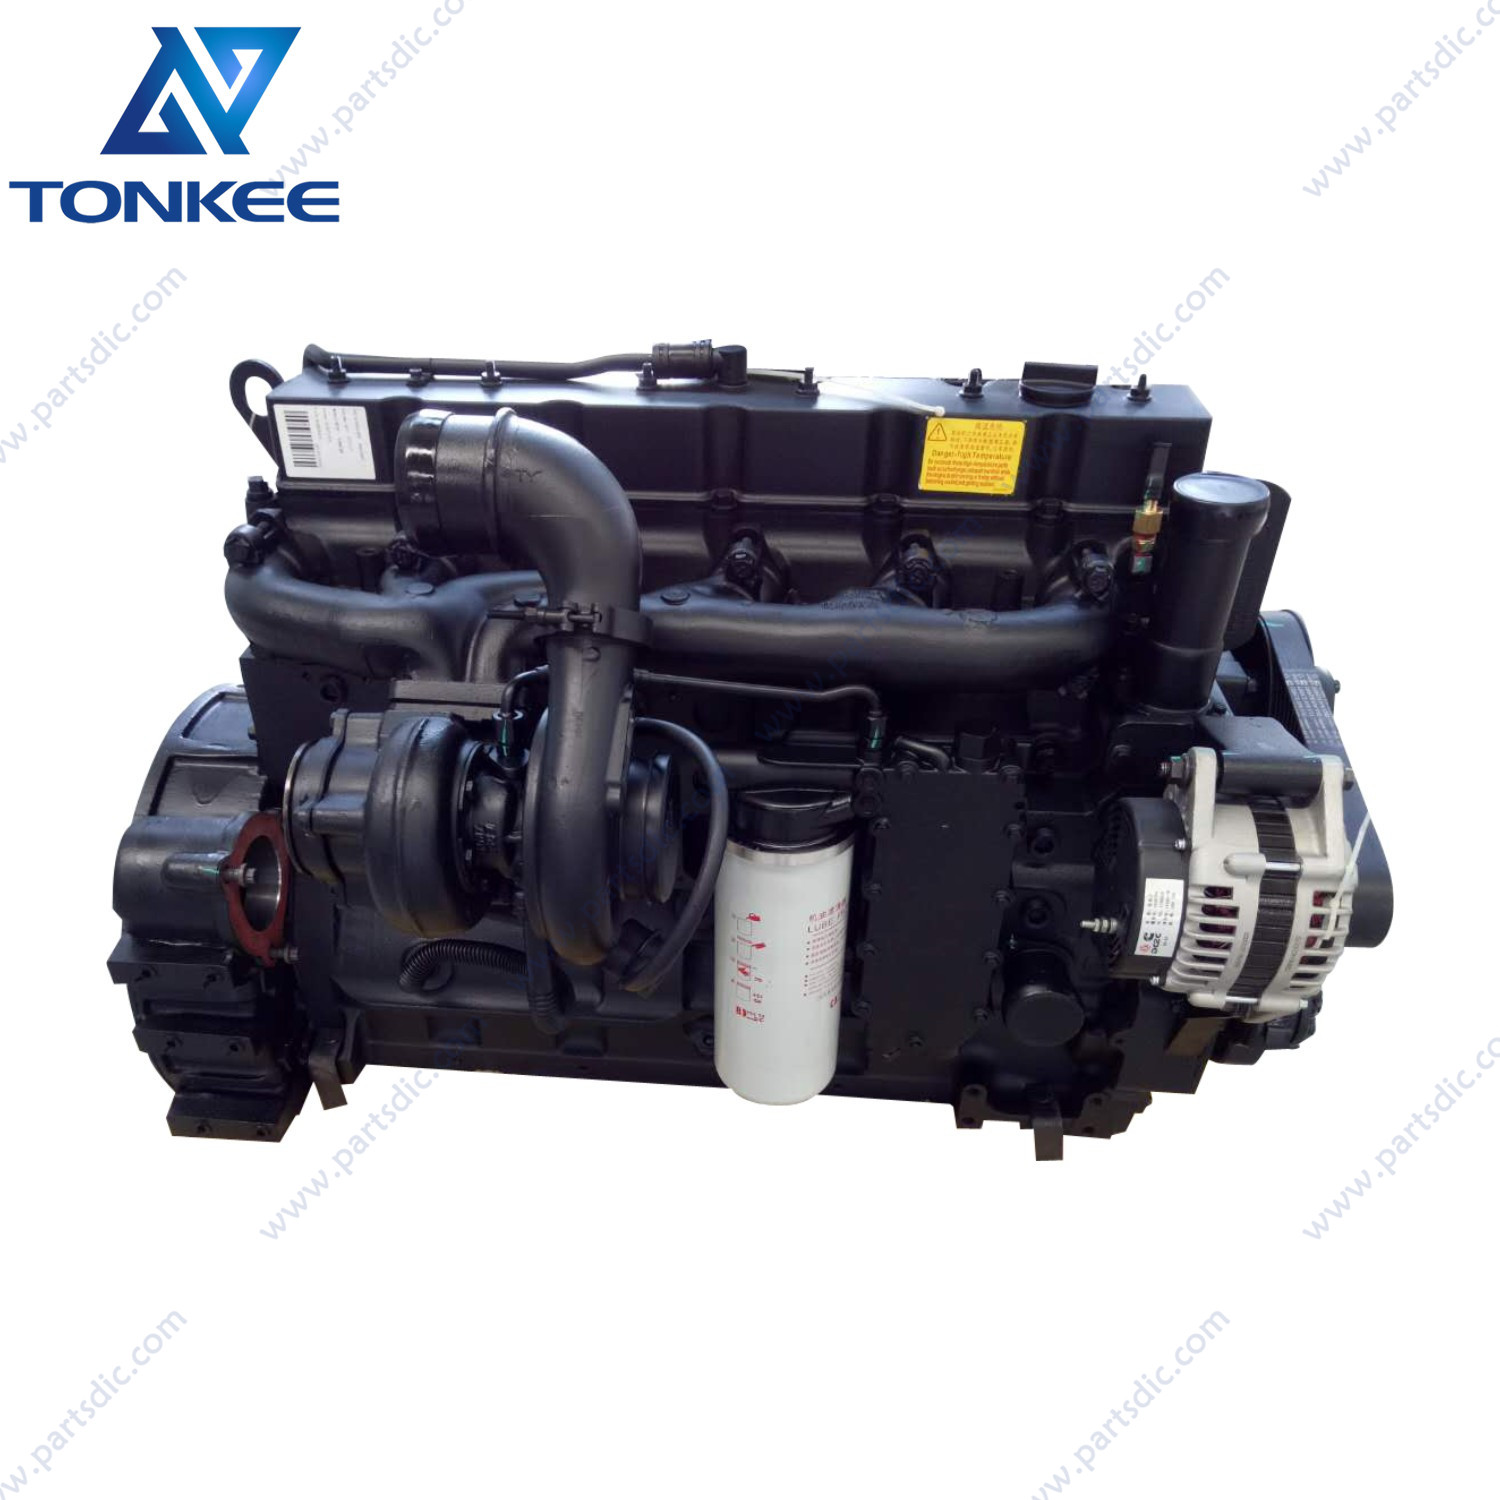 new SAA6D114E-2 6D114 6CT8.3 6C8.3 180KW 2200RPM diesel engine assy PC300-7 PC300LC-7 excavator complete engine assy for KOMATSU